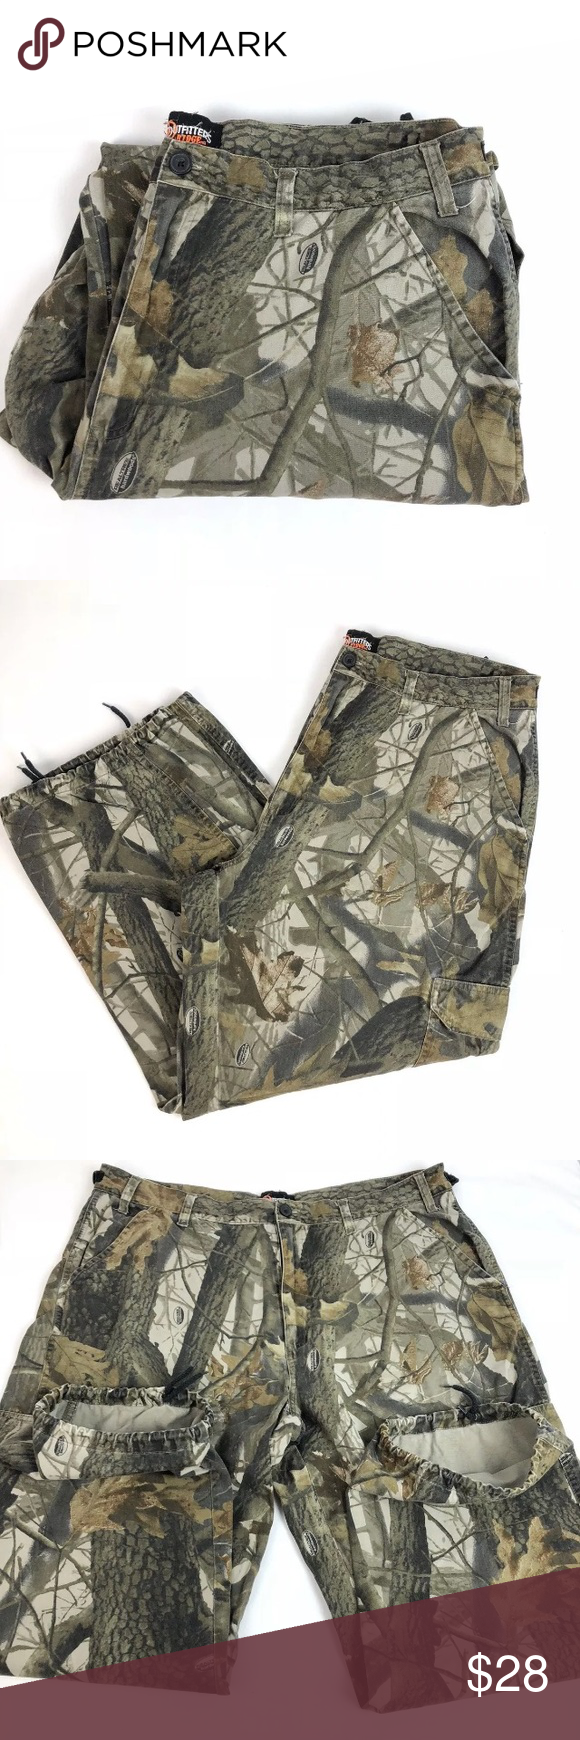 f9f4fe99b9cd7 Outfitters Ridge Realtree Hardwoods Camo Cargo Outfitters Ridge Realtree  Hardwoods Camo Cargo Pants tag size Mens